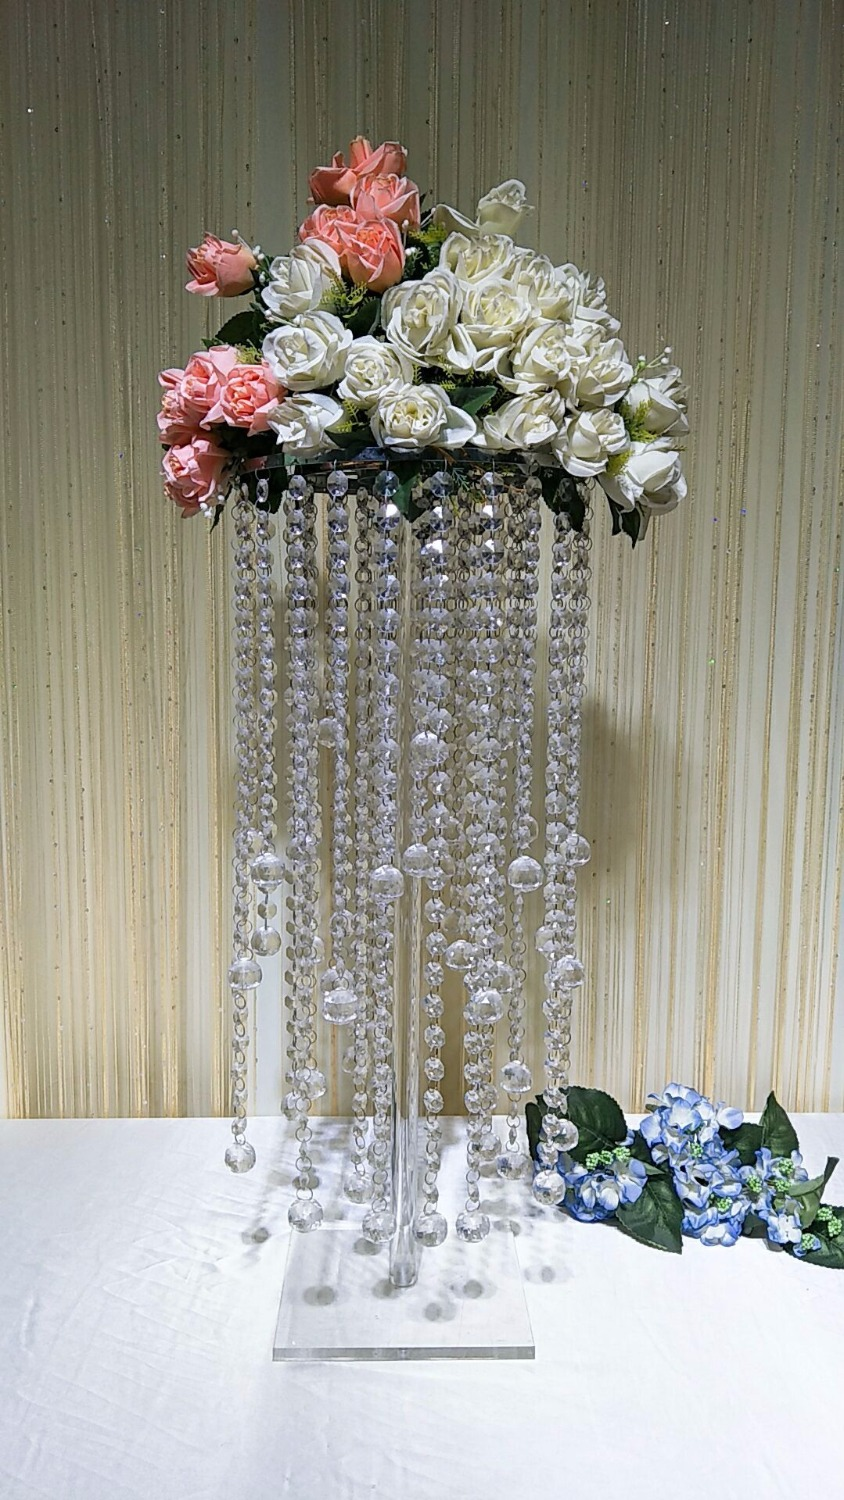 10 PCS Acrylic Flower Rack 75CM /30 Height Pillar Crystal Vases Wedding Table Centerpiece Party Event Flower Road Leads10 PCS Acrylic Flower Rack 75CM /30 Height Pillar Crystal Vases Wedding Table Centerpiece Party Event Flower Road Leads